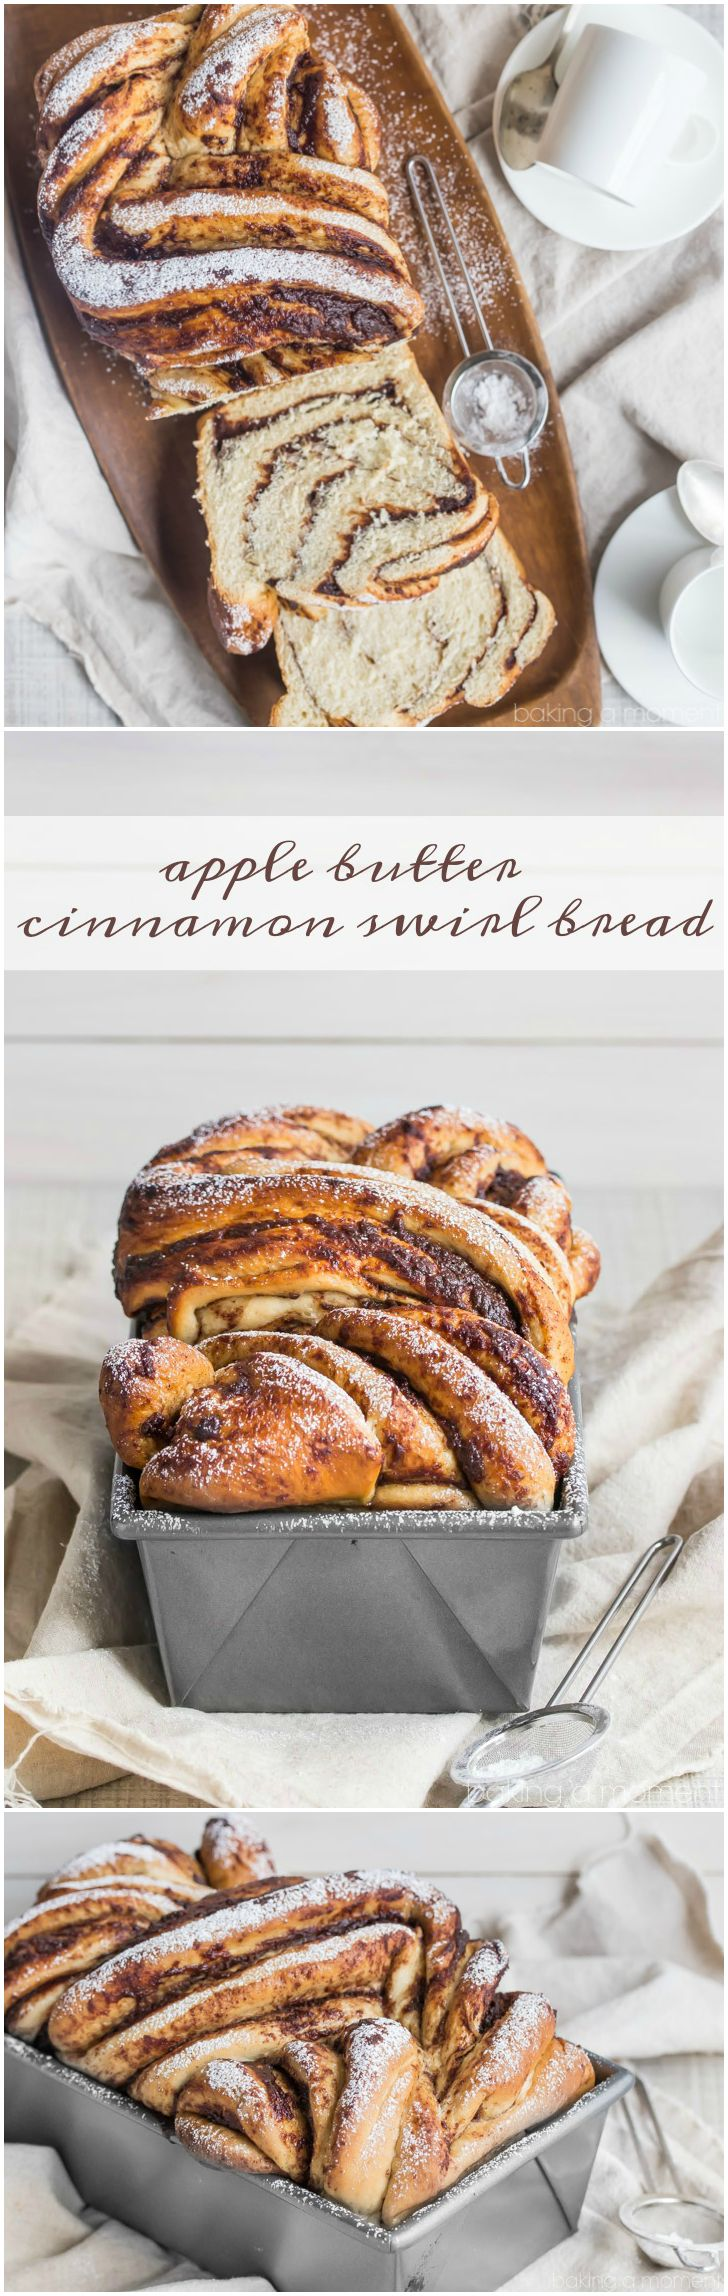 Apple Butter Cinnamon Swirl Bread- This bread was easy to make, so moist, and had plenty of apple butter and cinnamon sugar in every bite. My family loved it!  food breads apple